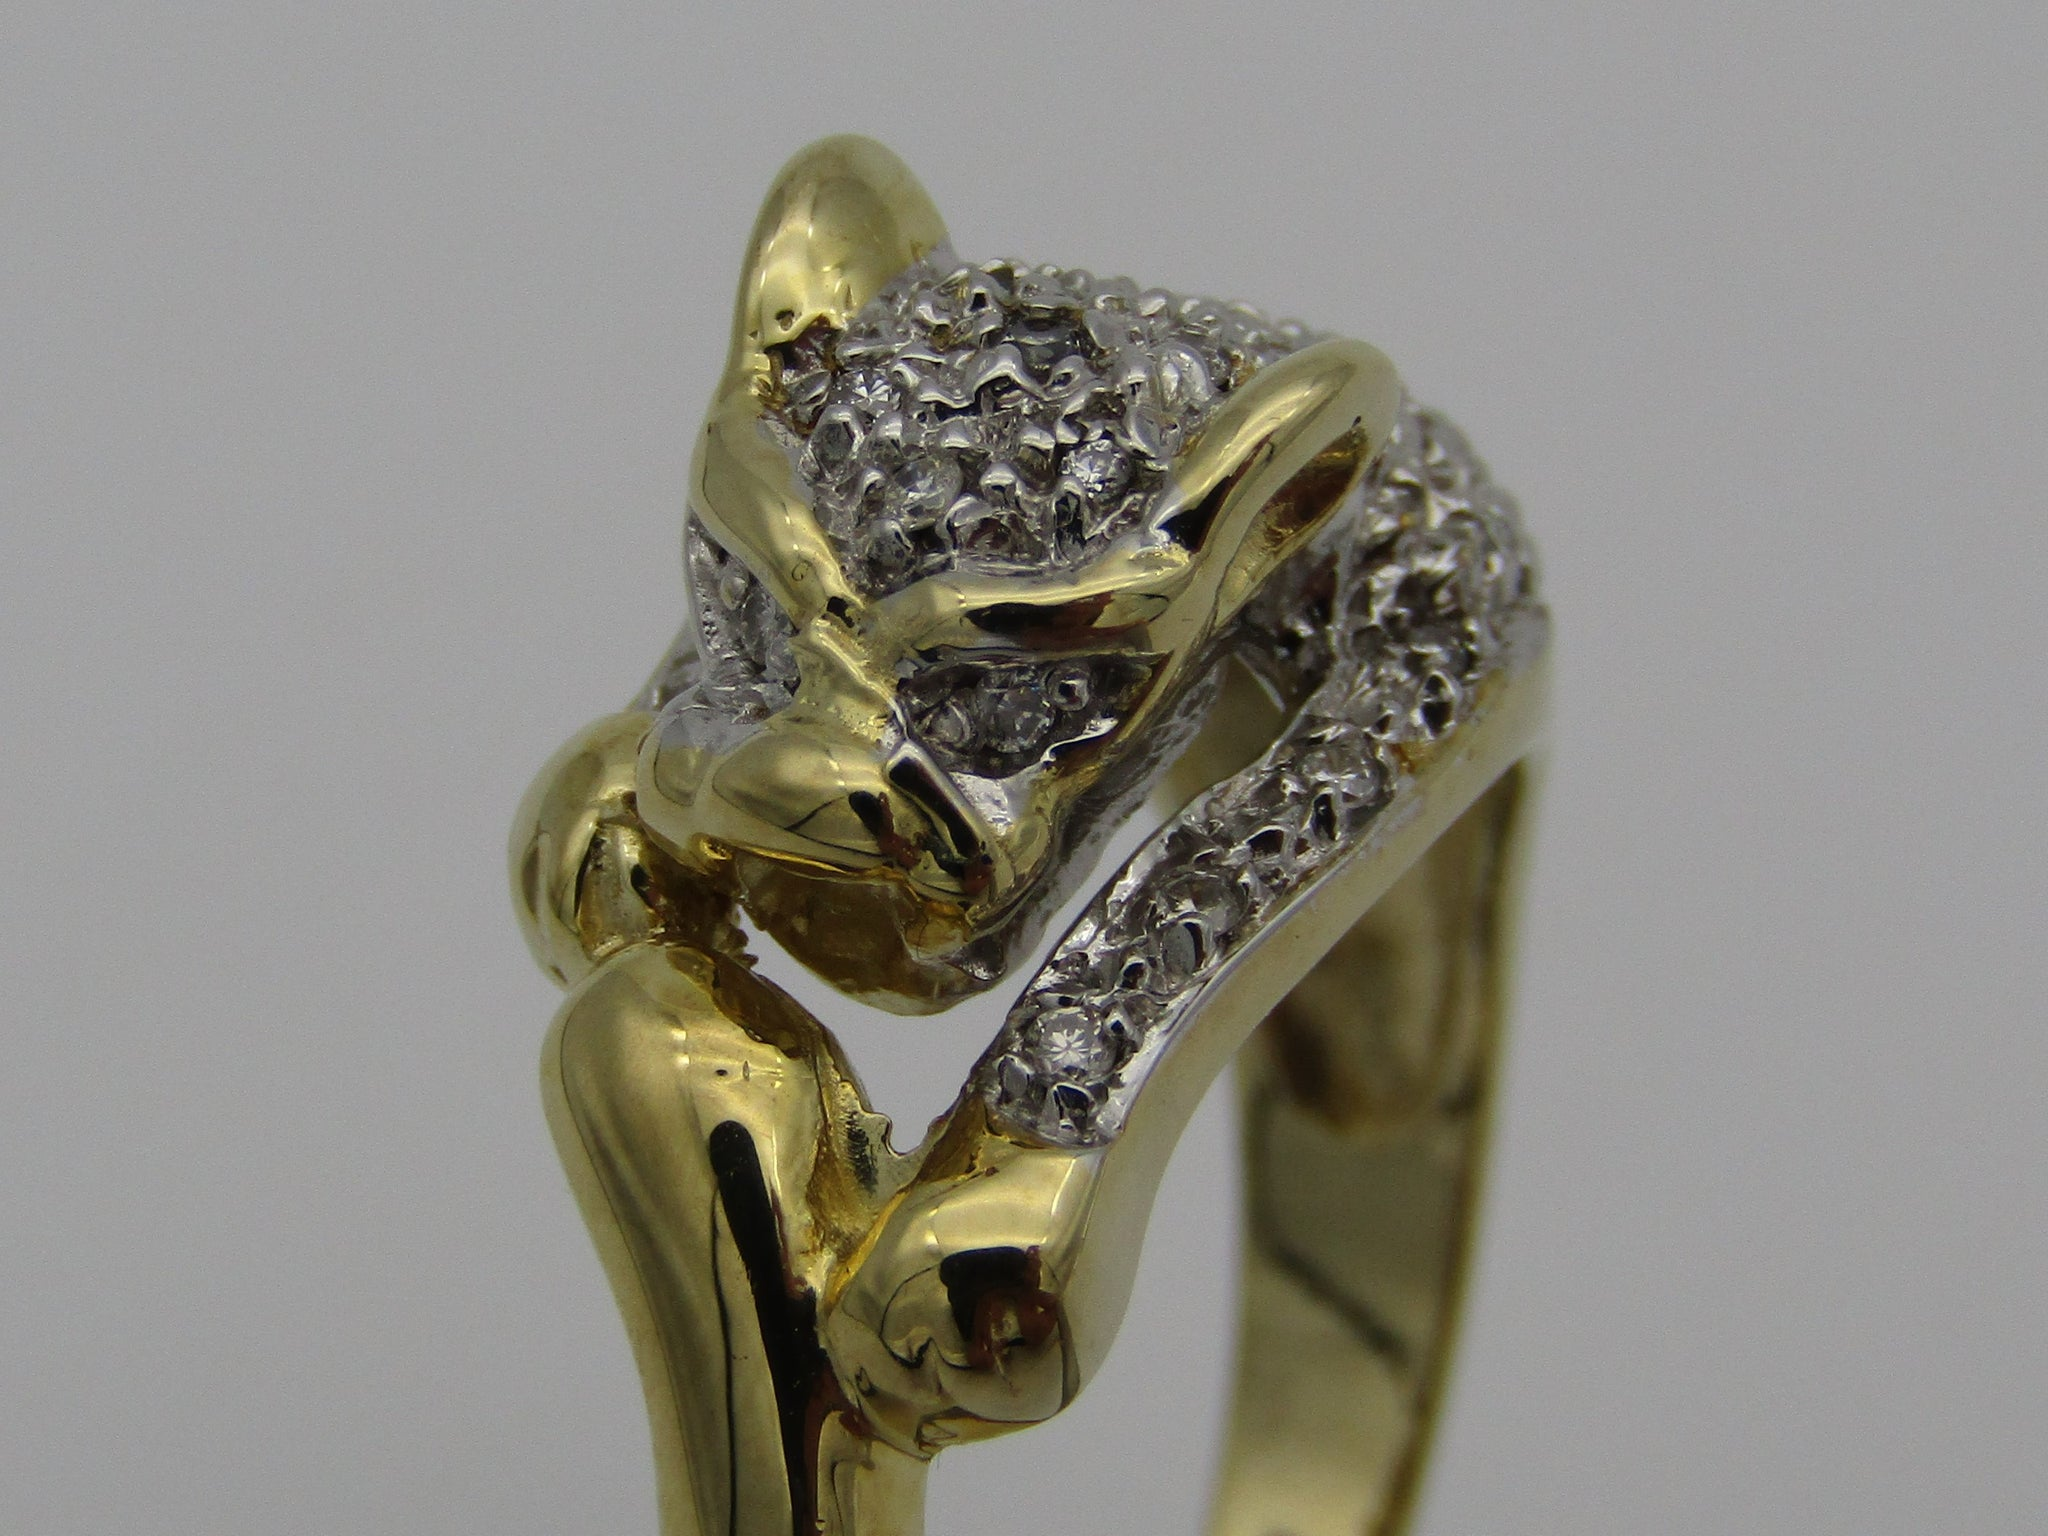 9kt gold Cartier style diamond ring.